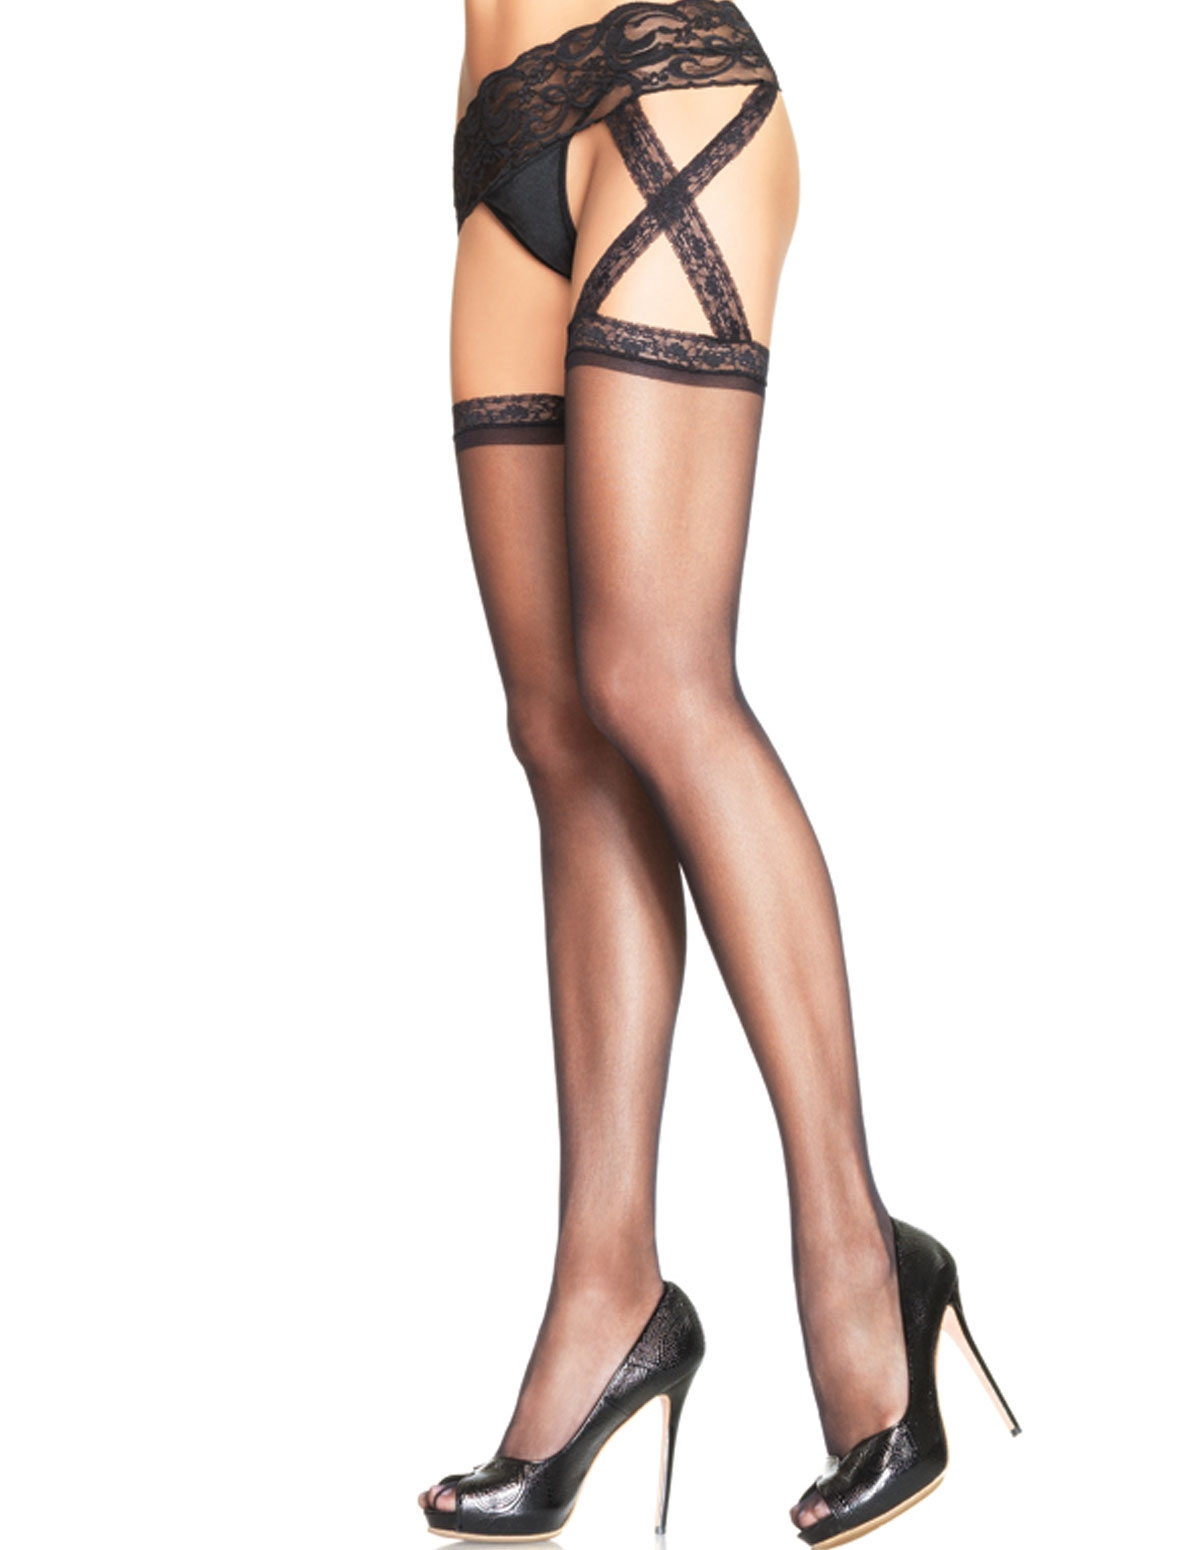 Lace Top Stocking With Garterbelt - Plus